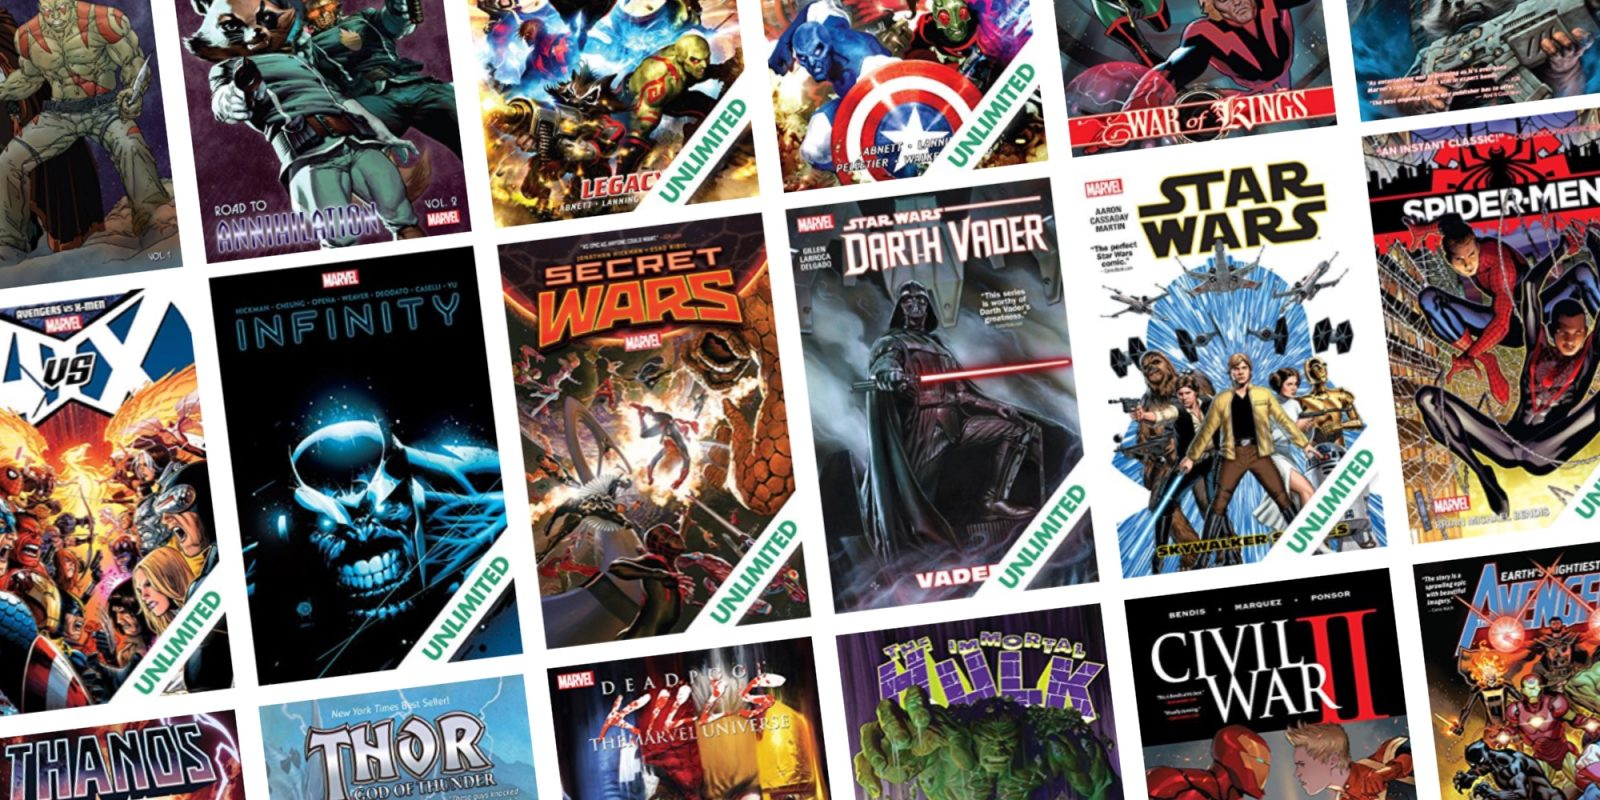 ComiXology takes up to 88% off modern Marvel classics and more from under $1